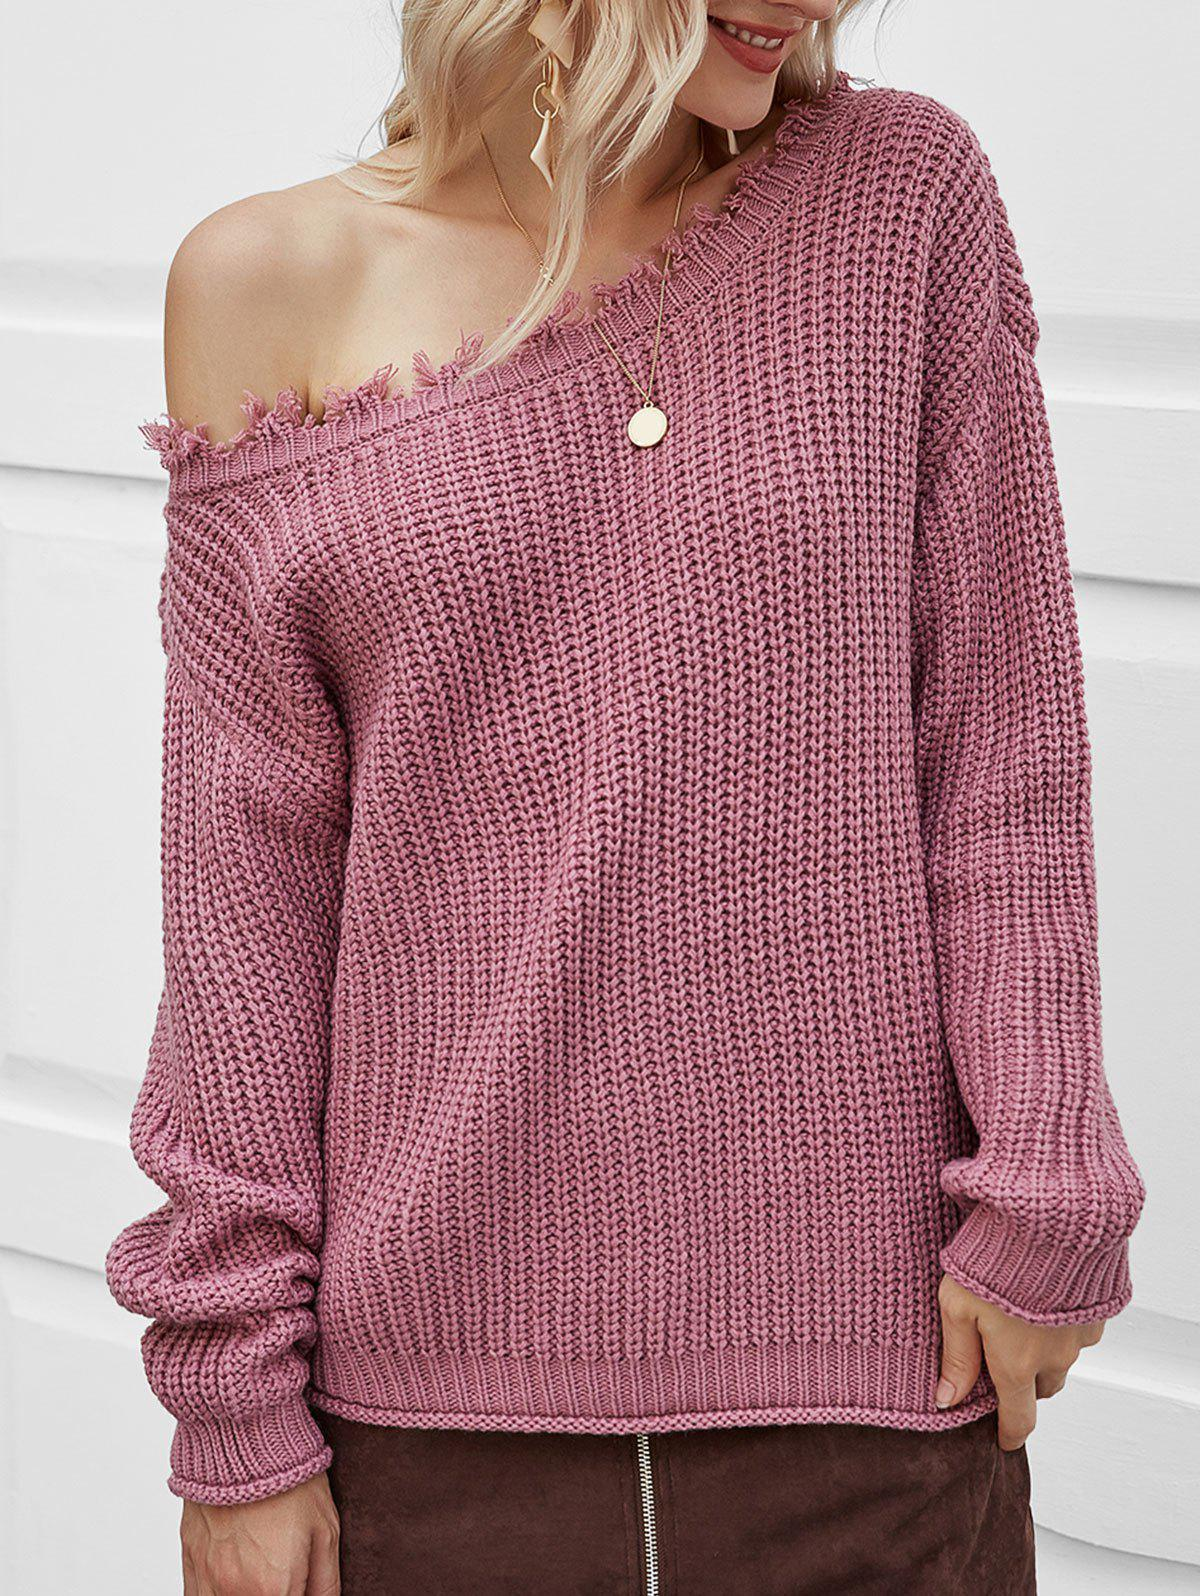 Discount Skew Neck Ripped Chunky Sweater